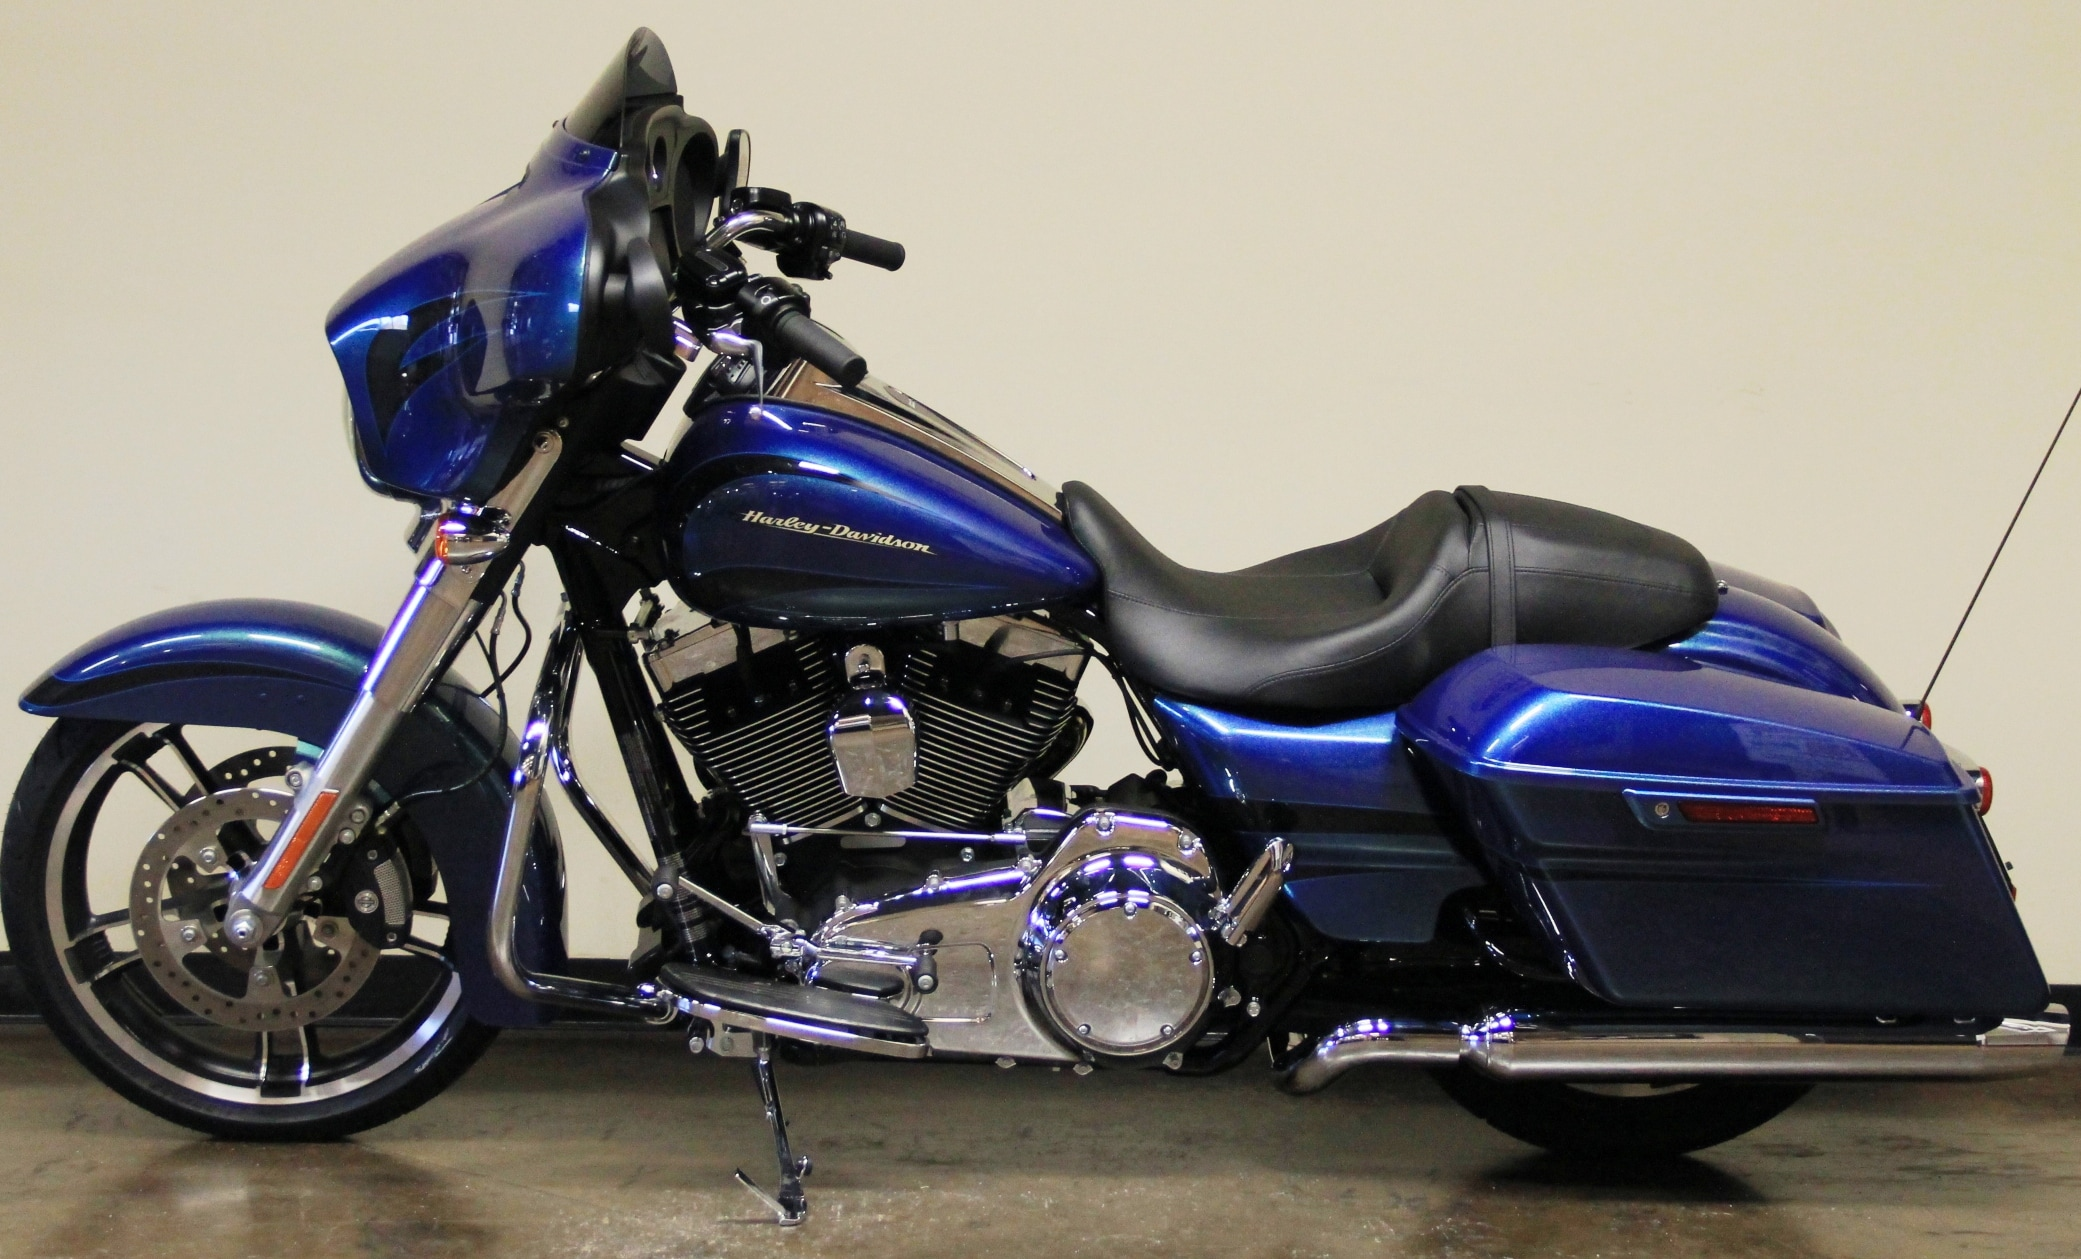 2014 Street Glide with Tour Pack